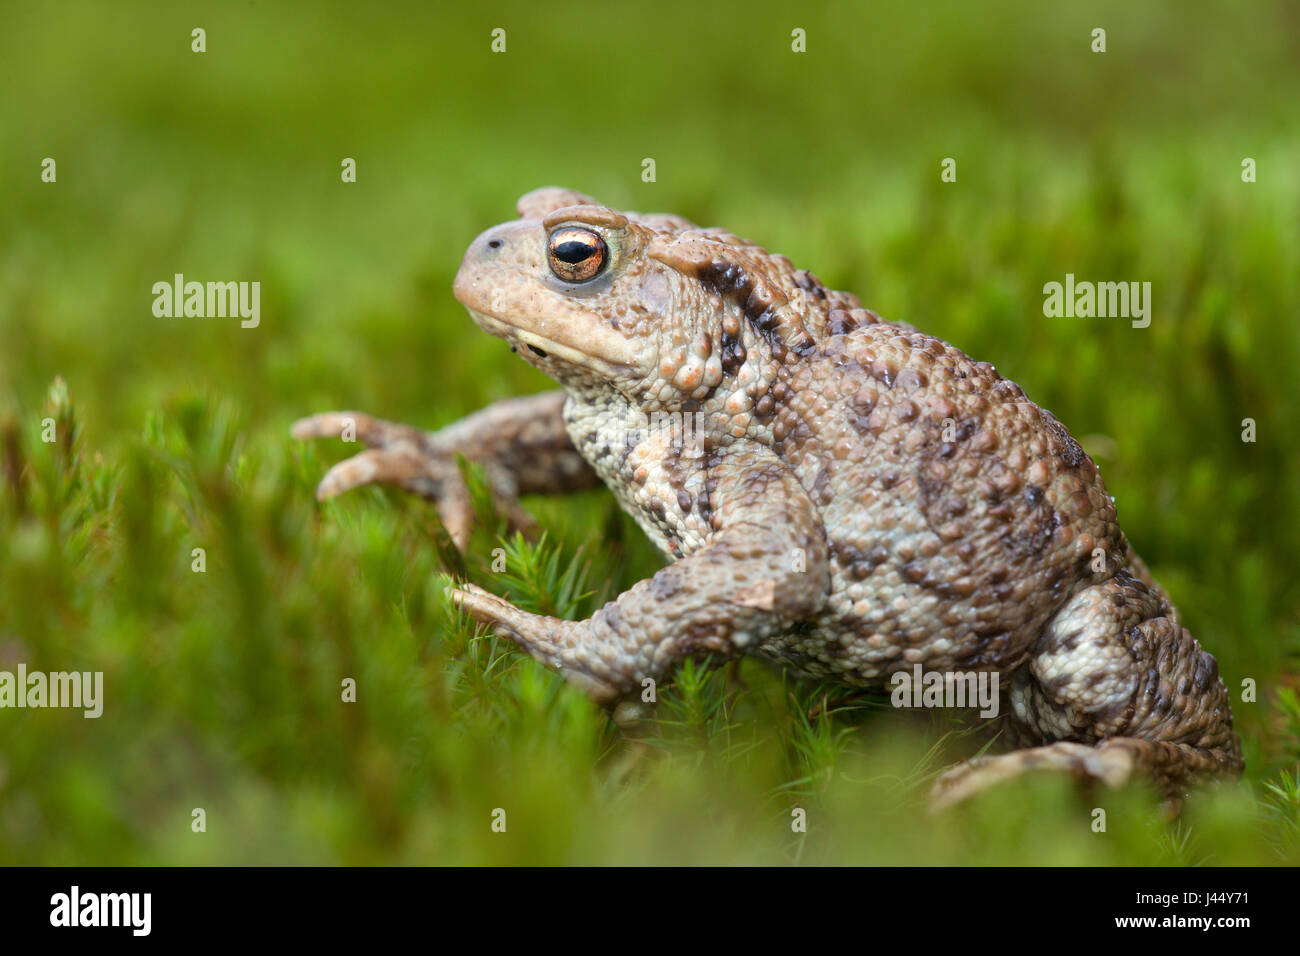 gewone pad; bufo bufo; common toad; common european toad; crapaud commun; erdkröte; bufonidae; pad; padden; toad; Stock Photo